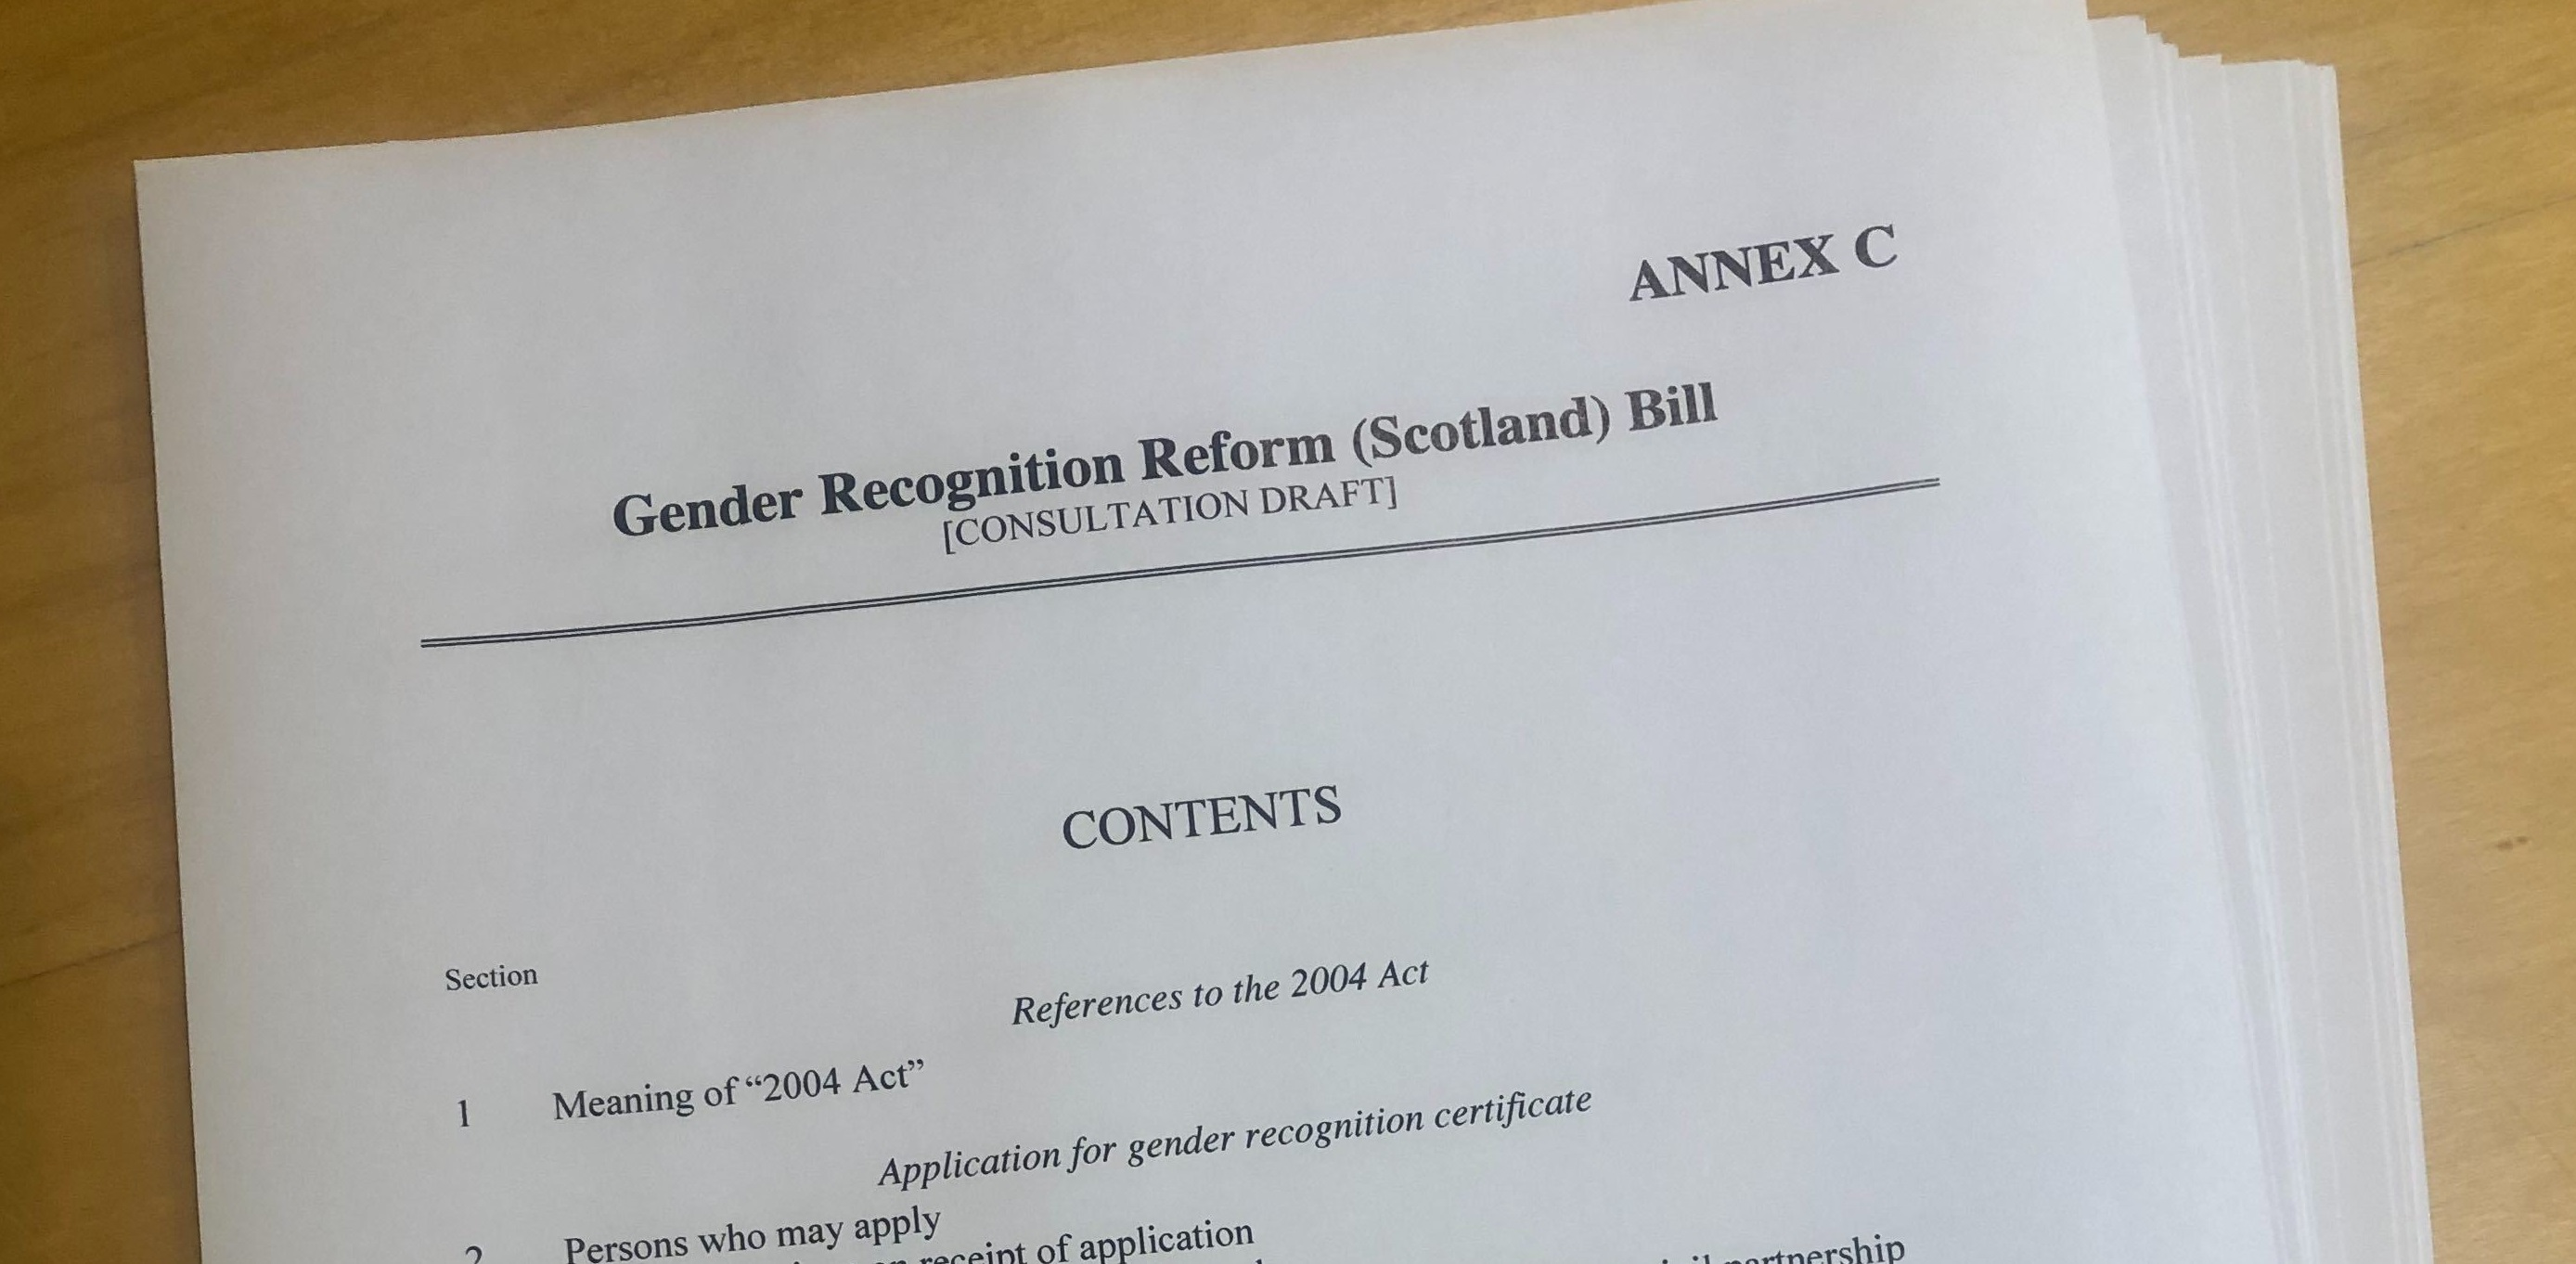 The draft bill sets out the process for Scotland's devolved gender recognition system